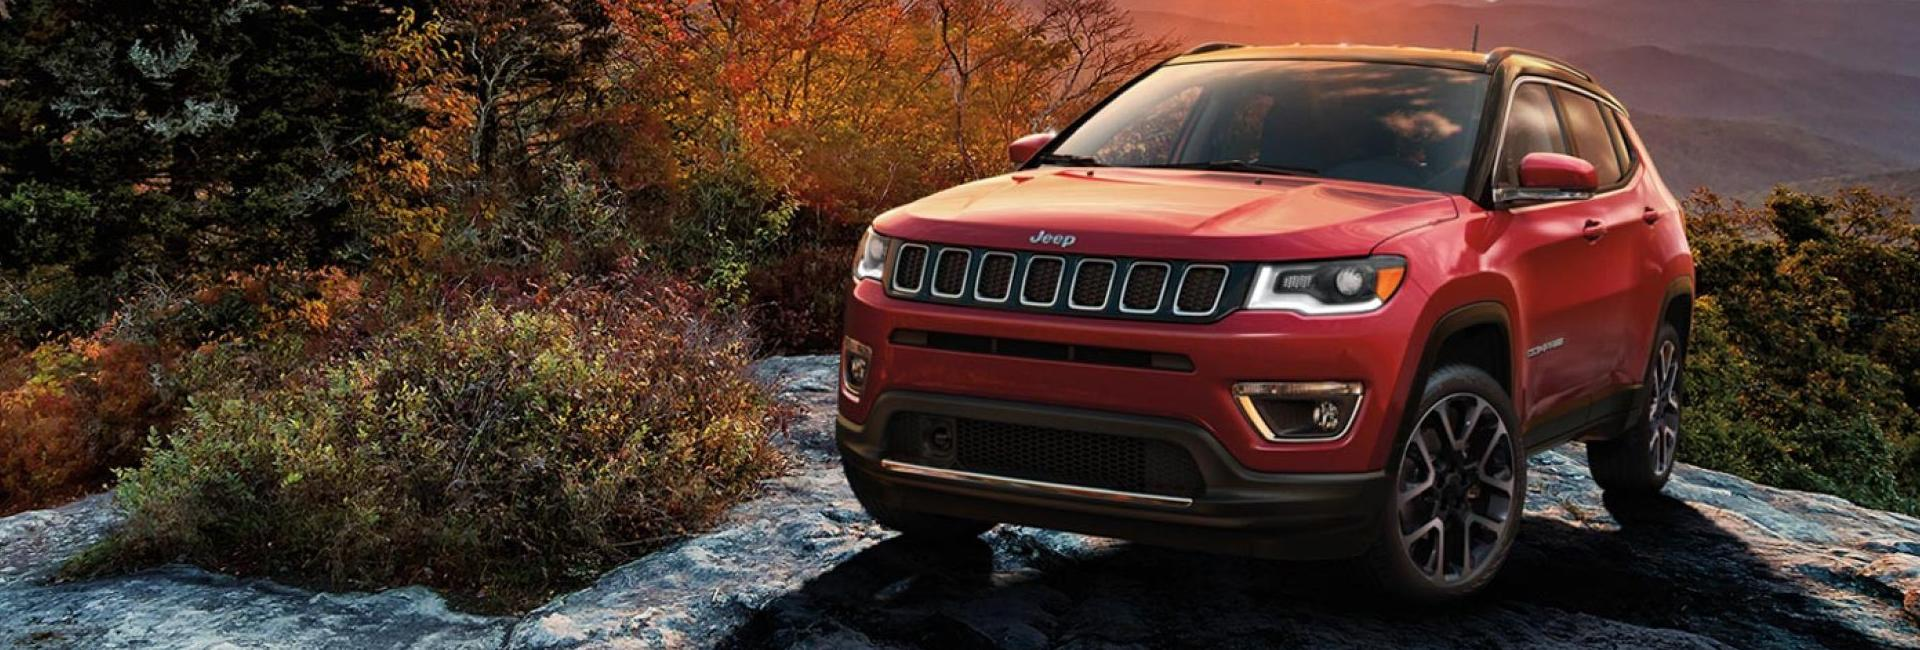 Image of the 2020 Jeep Compass for sale at Spitzer Jeep Dealer Mansfield Ohio